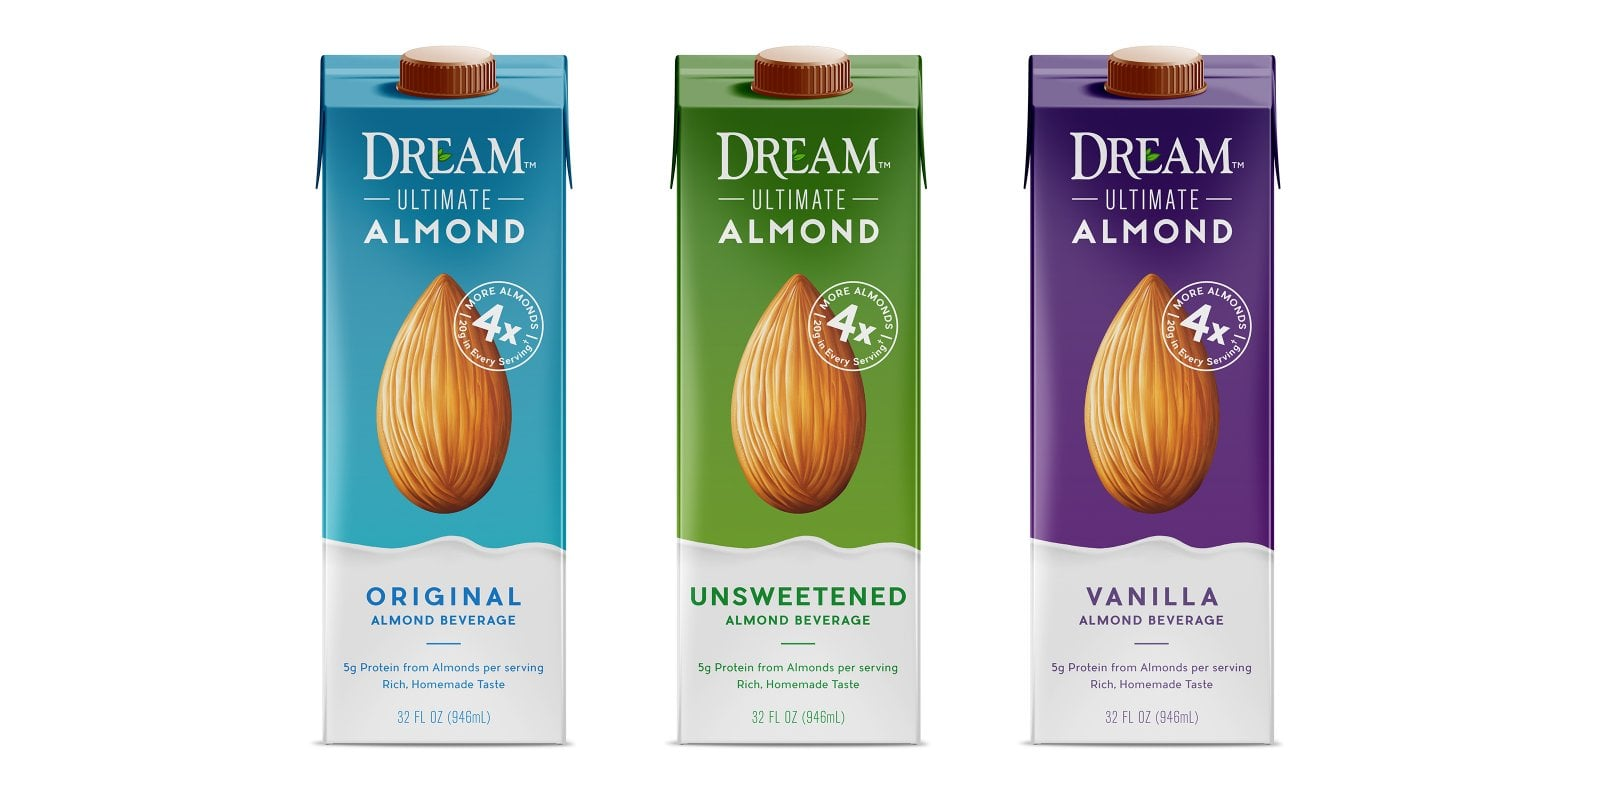 Hain Celestial Dream Almond Packaging-07